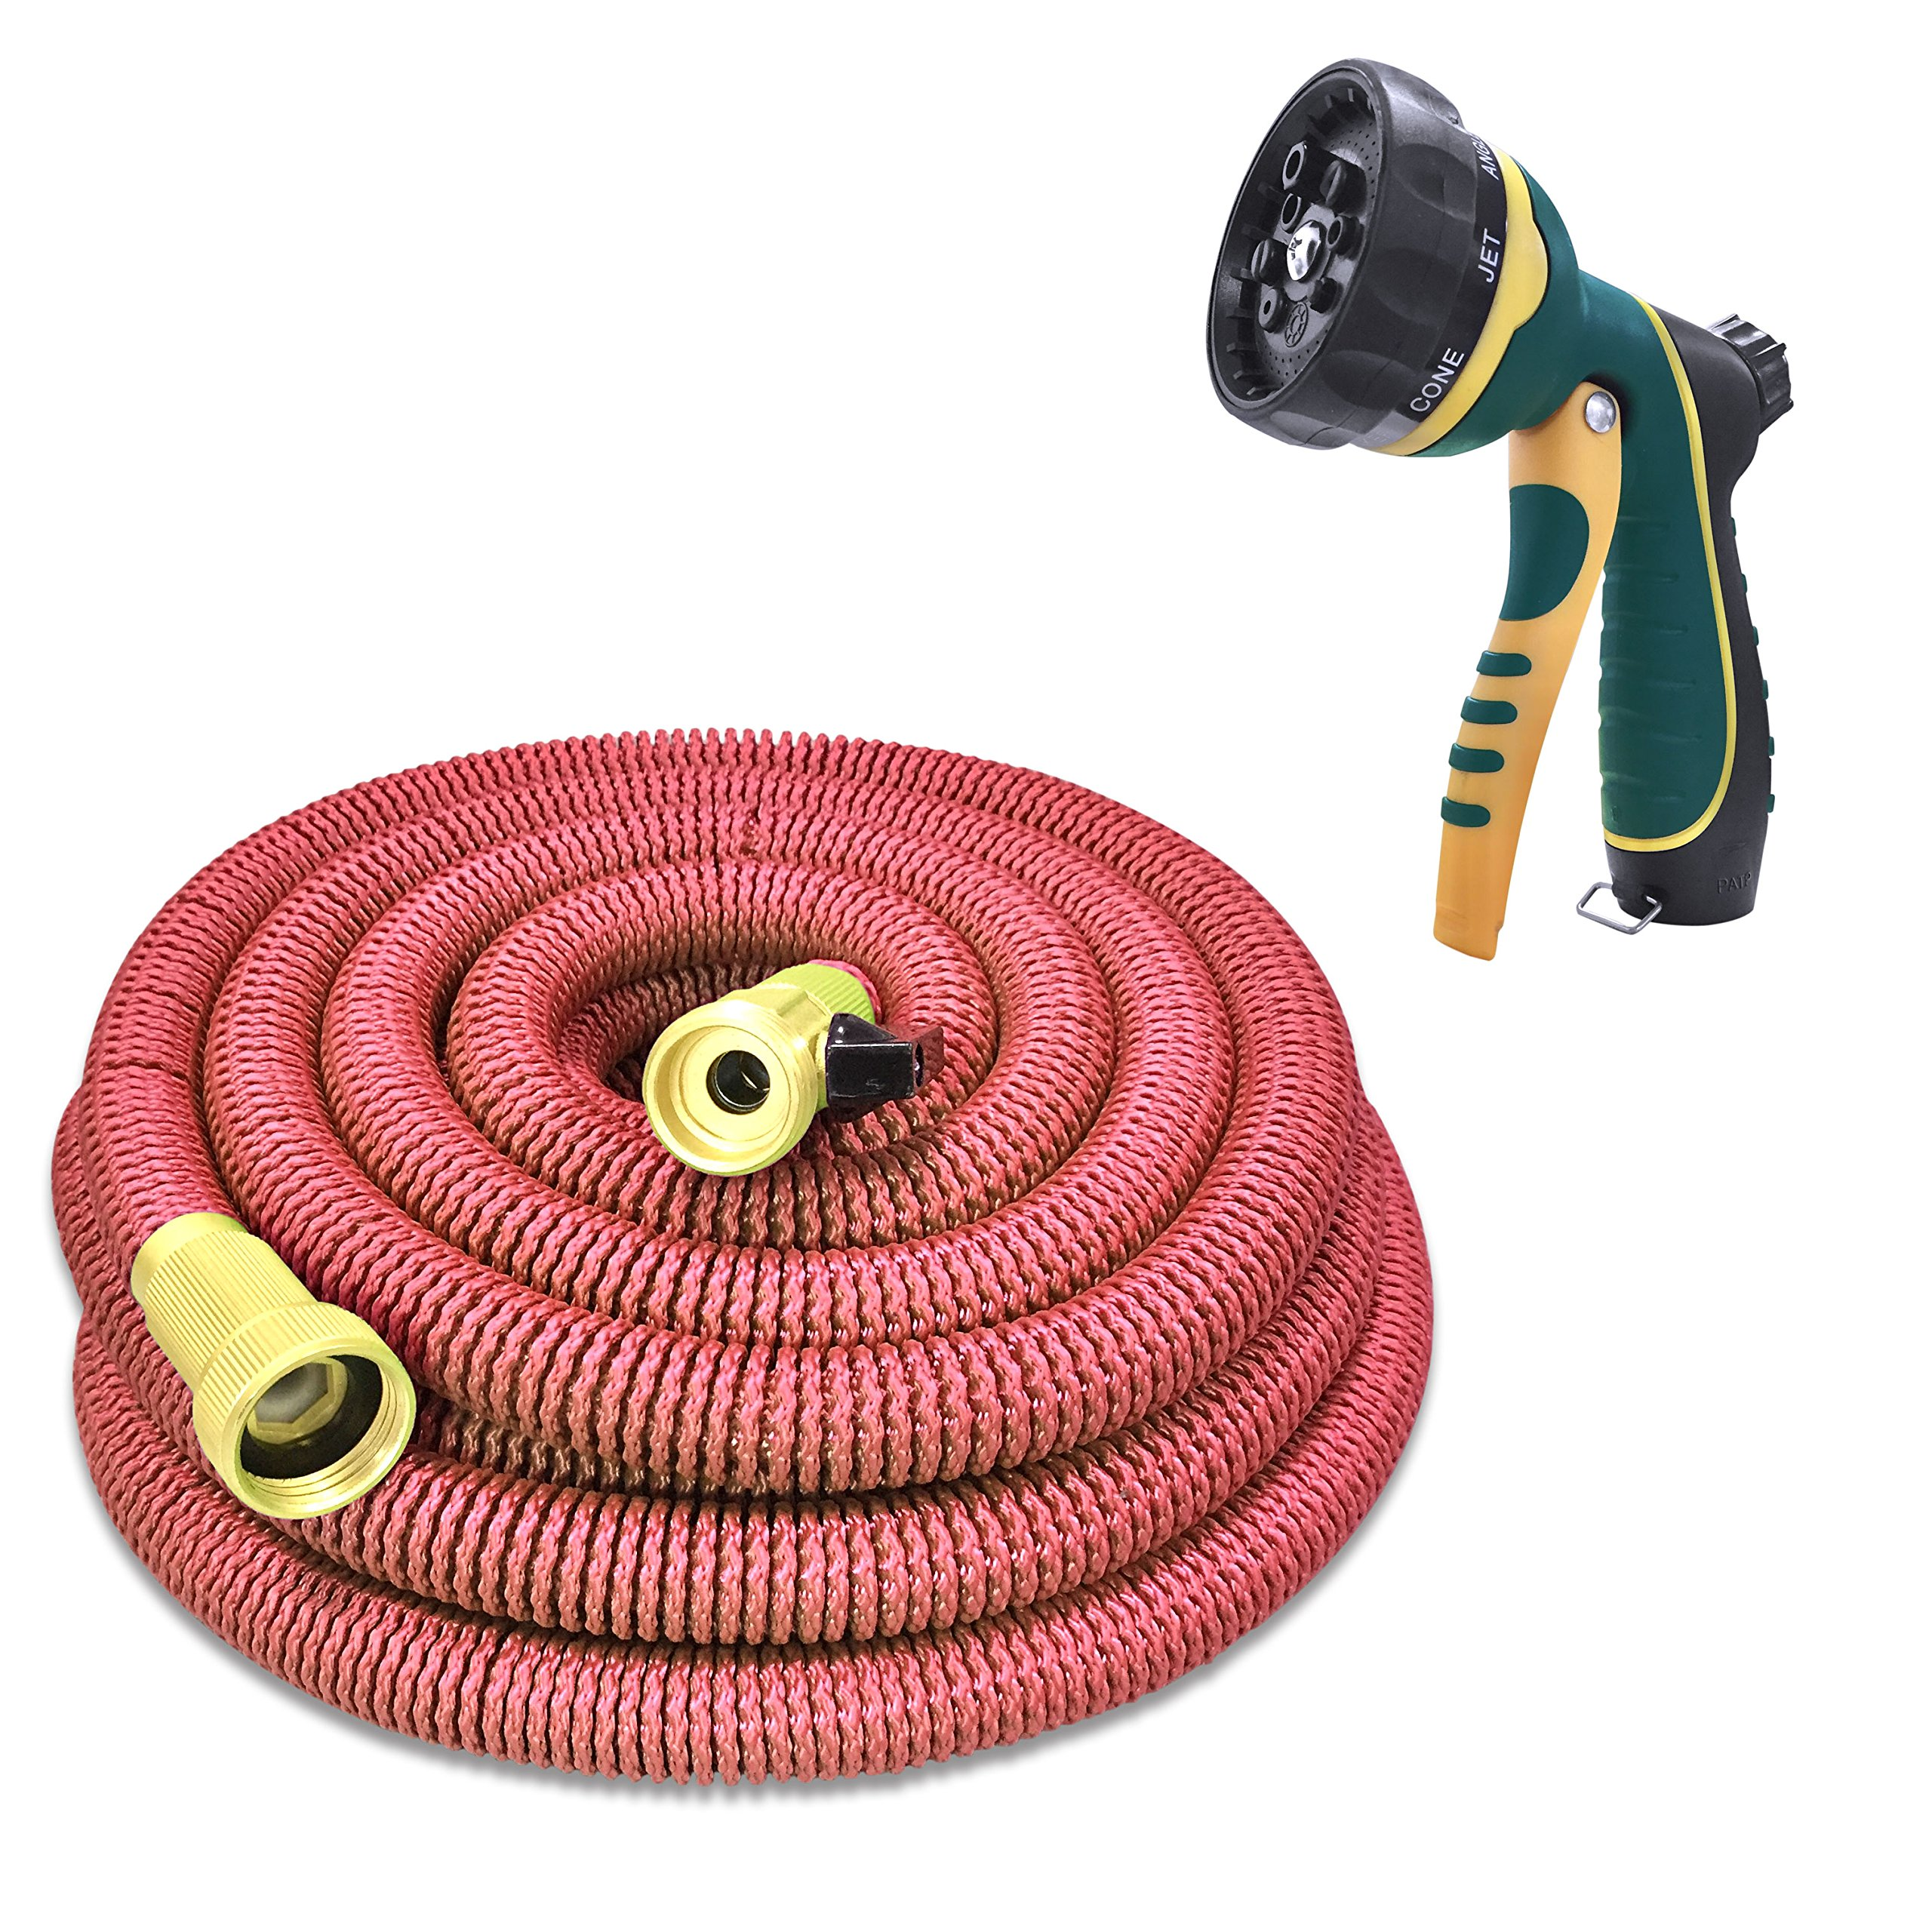 N-Green Expandable Garden Hose - 25/50/75/100 Feet Strongest Triple Core Latex and Solid Brass Fittings Free Spray Nozzle 3/4 USA Standard Easy Storage Kink Free Flexible Water Hose (25 Feet)